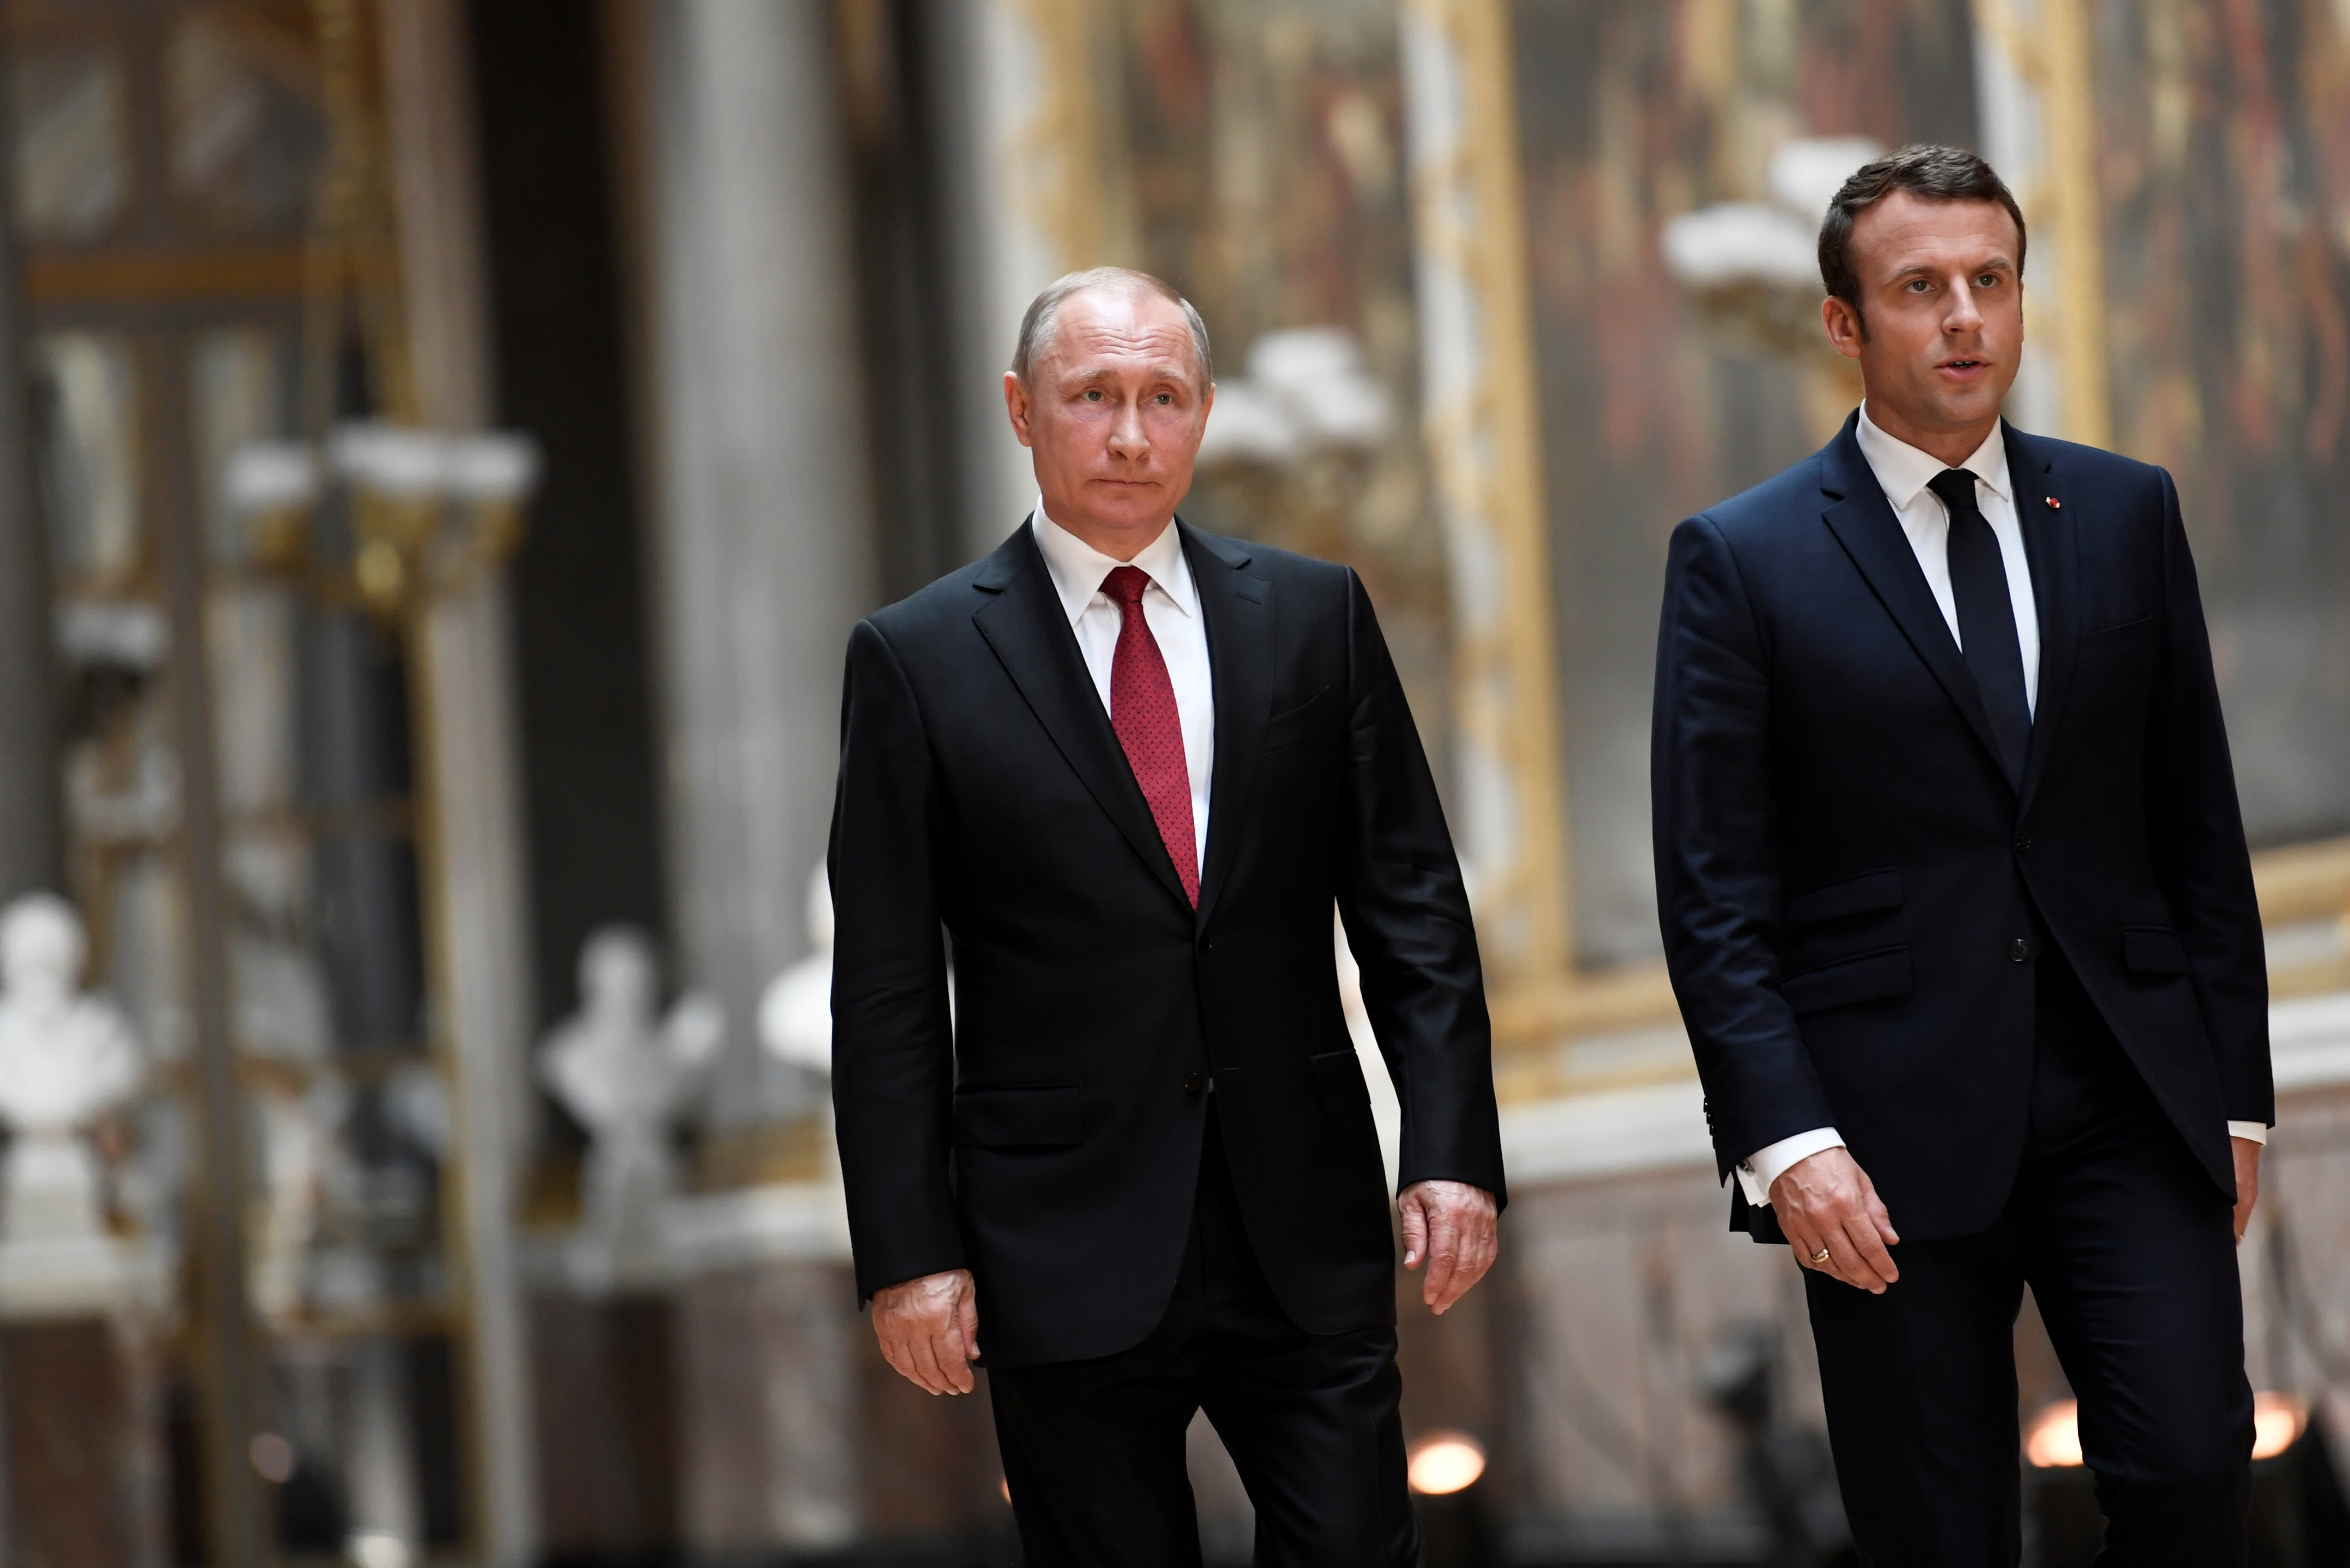 French President Emmanuel Macron, with Russian President Vladimir Putin, in Versailles on May 29, 2017.